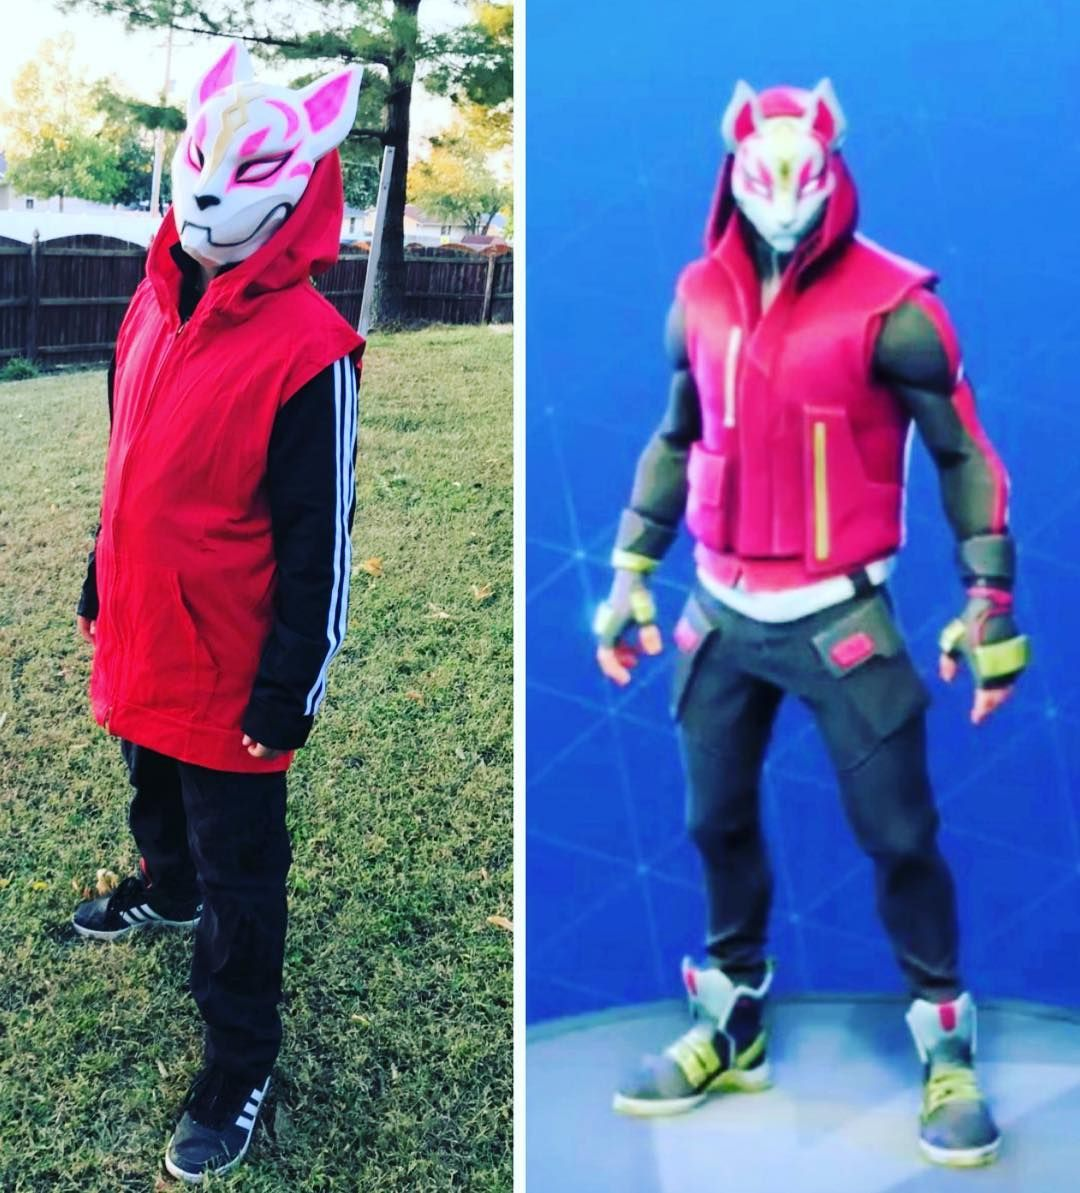 Costume Halloween 2020 Fortnite Costume Drift My son is a huge #Fortnite fan, so of course he wants to be a